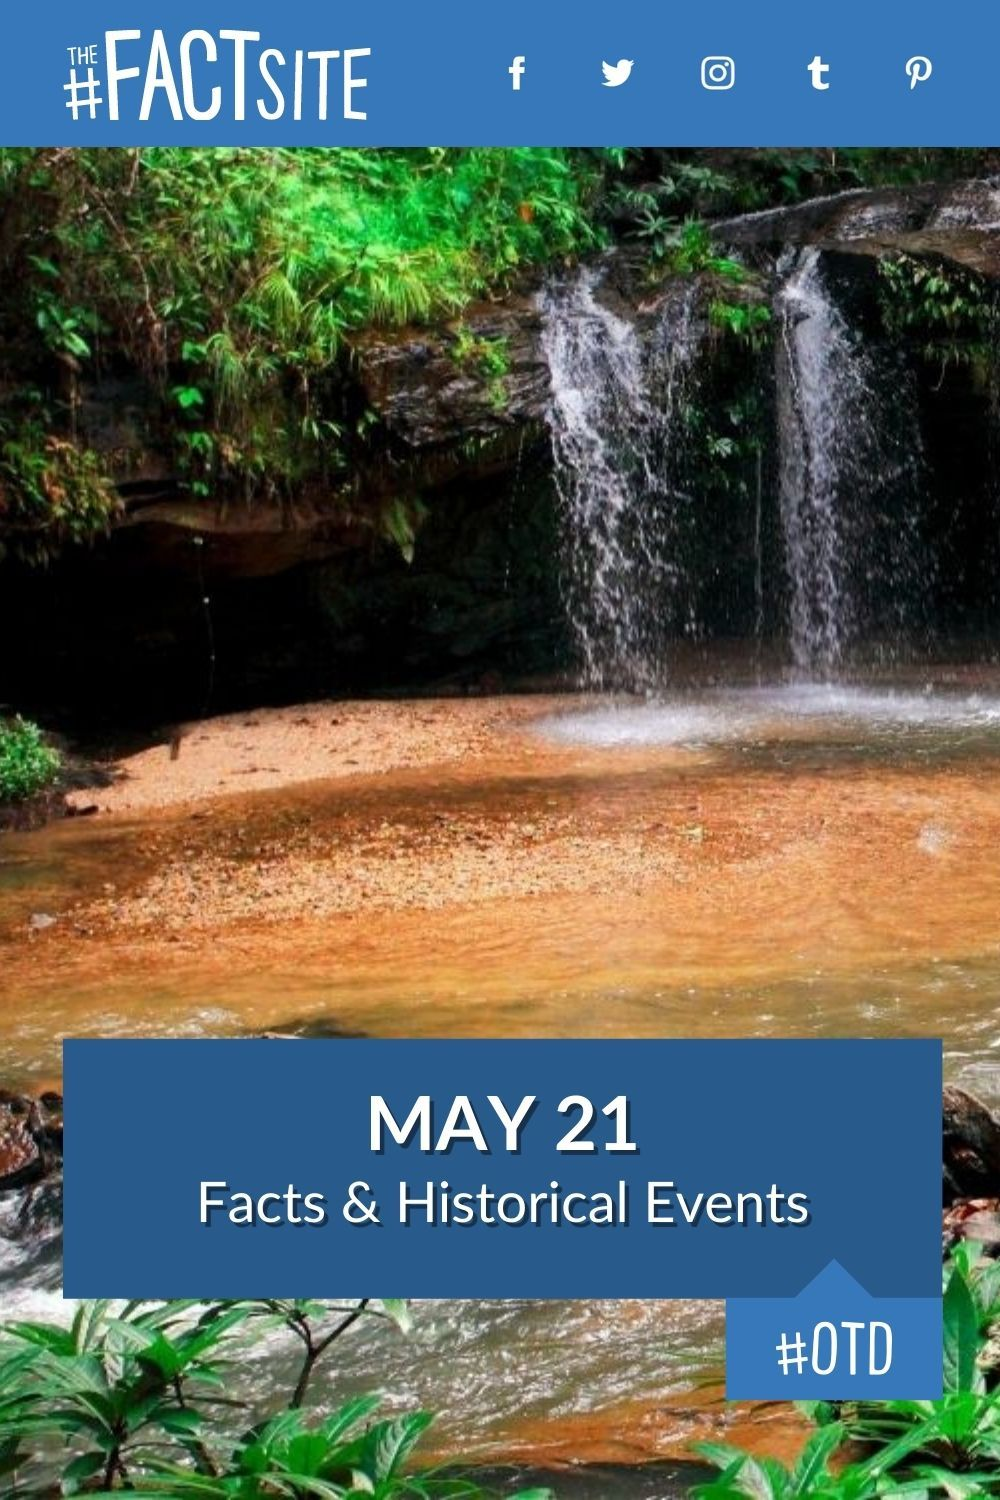 Facts & Historic Events That Happened on May 21